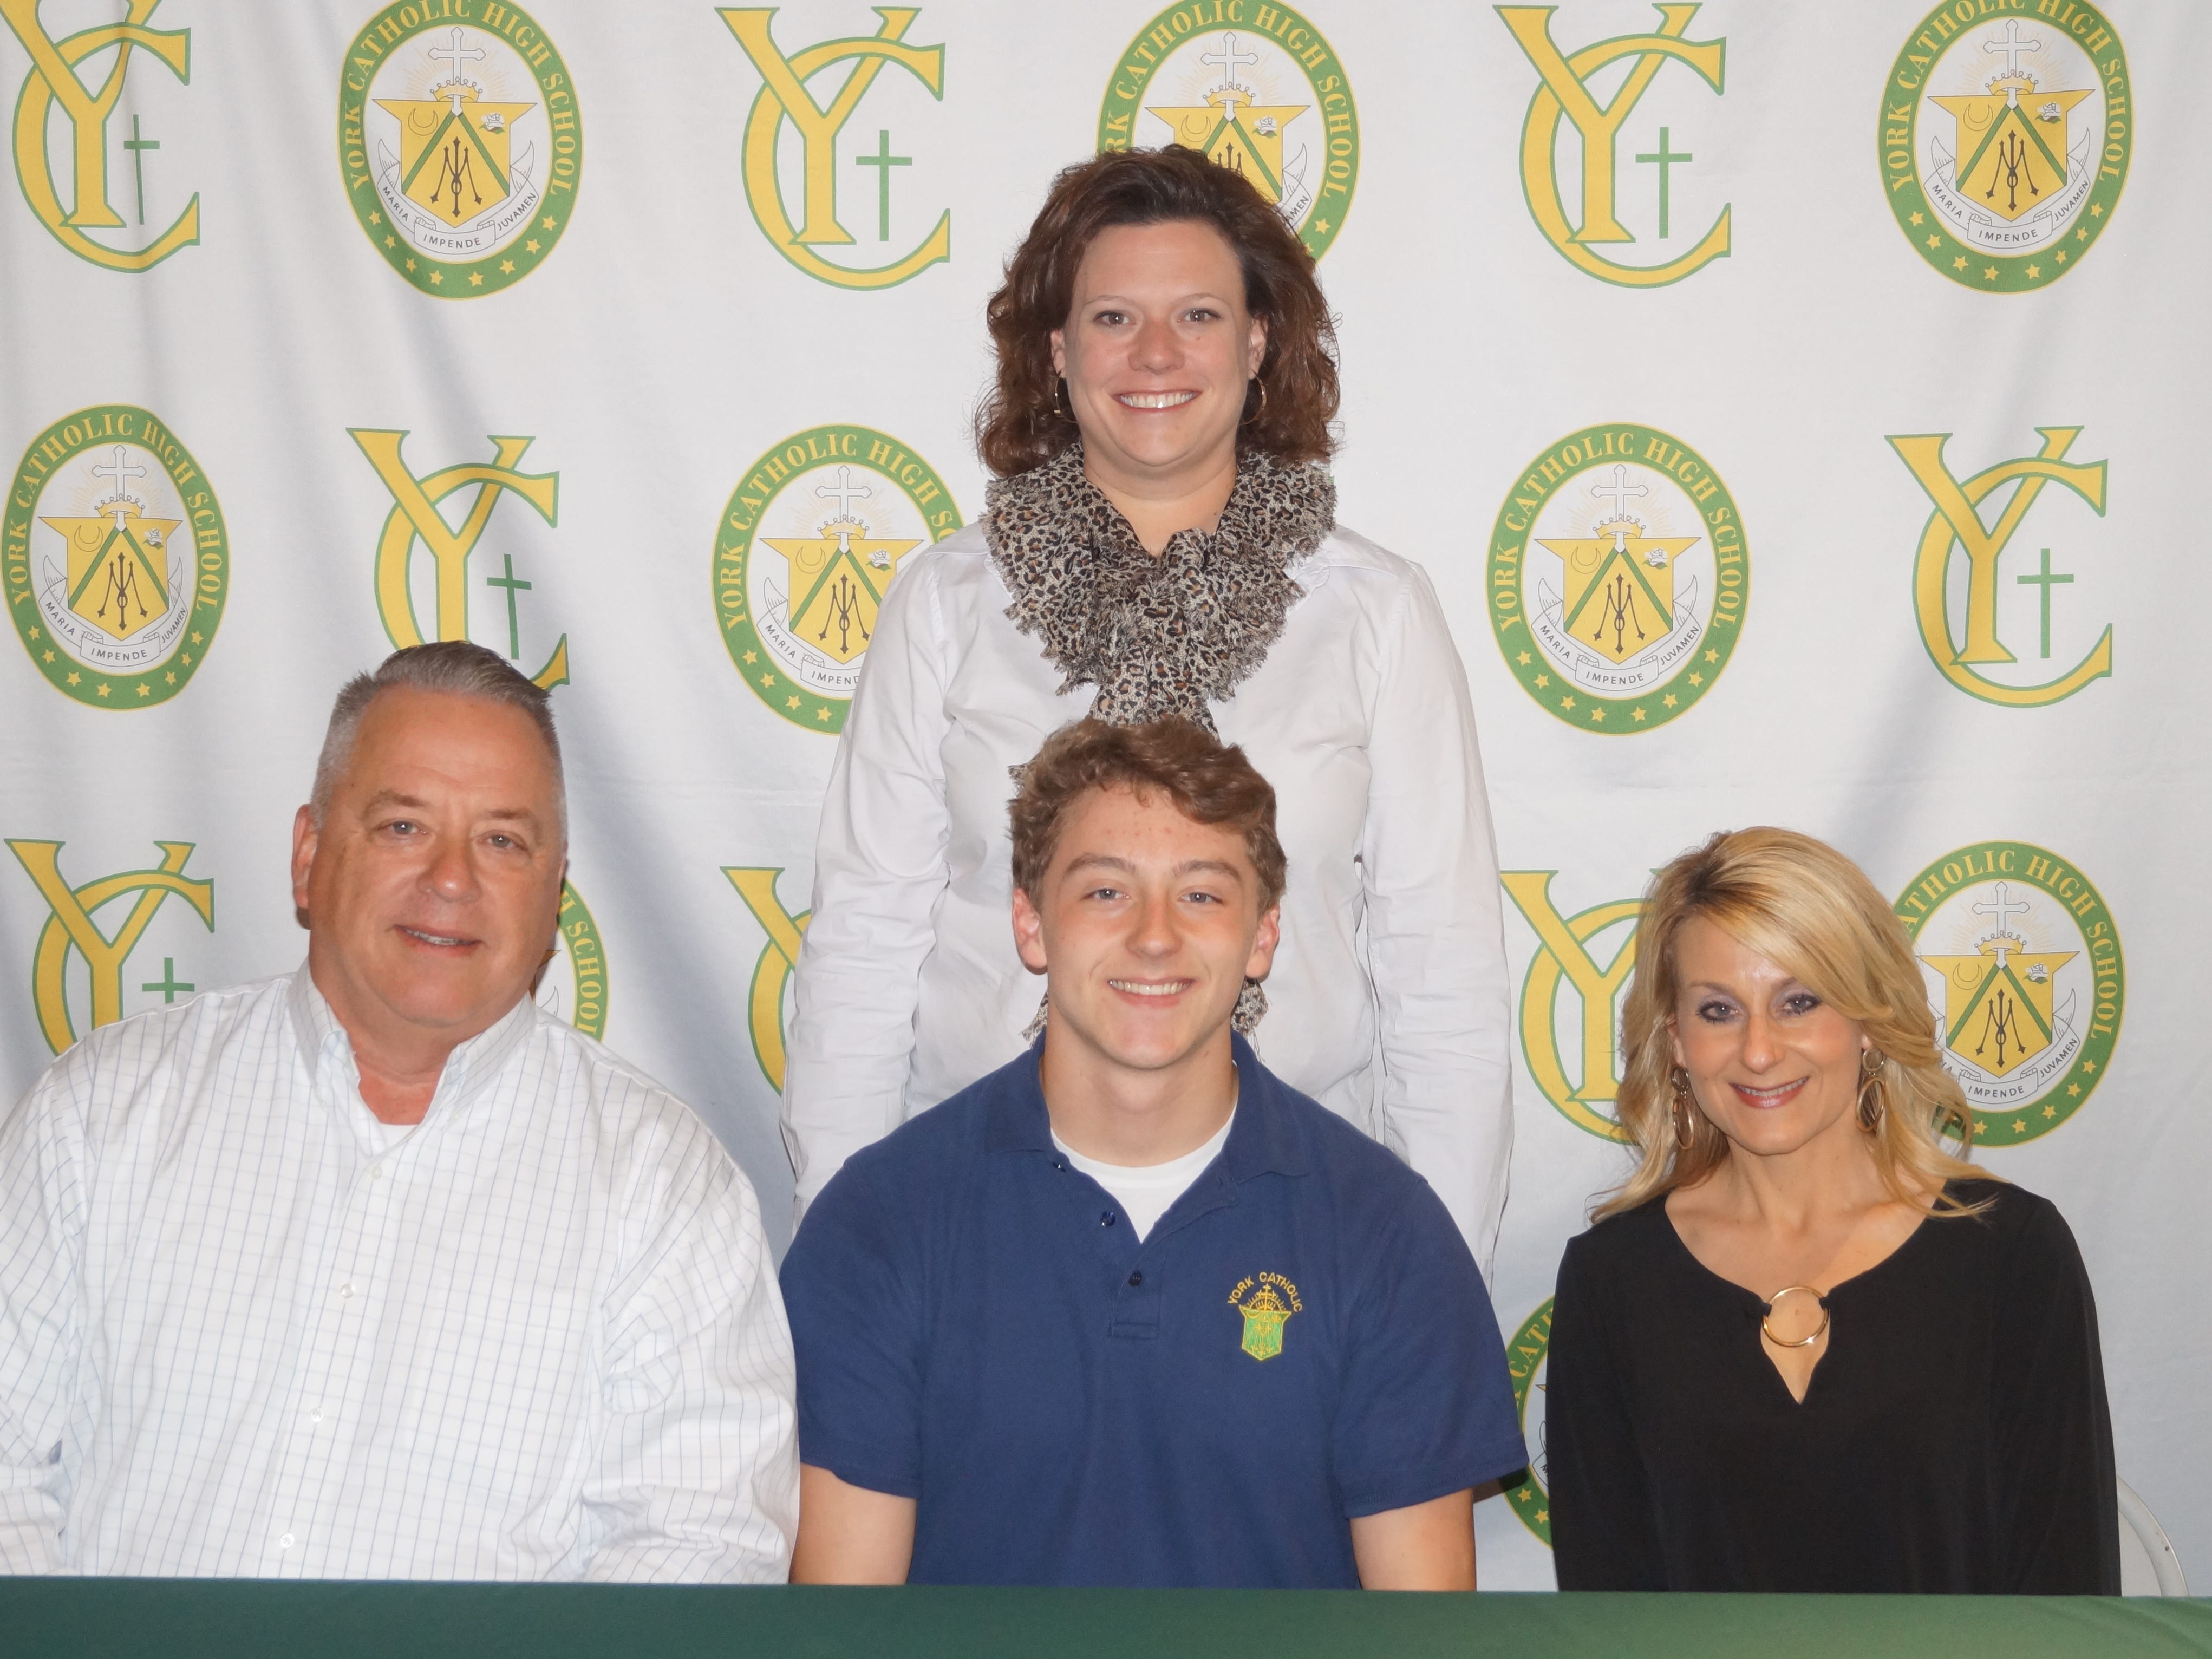 York Catholic High SchoolÕs Chandler Hake has committed to the United States Army Reserve Officer Training Corps (ROTC) while continuing his education at Florida Institute of Technology in Melbourne, Florida. Hake was a 3-year Varsity starter for the Fighting Irish lacrosse team and was a member of the 2016 and 2018 YAIAA Lacrosse Championship teams.  He was named YAIAA Coaches All-Star Second Team Attack in 2018.  He also played basketball and ran cross country while at York Catholic and was a member of the 2018 District III-AA Football Championship team.  Pictured are, front row from left: Steven Hake, father of Chandler; Chandler Hake; Lisa Hake, mother of Chandler.  Back Row:  Katie Seufert, York Catholic Principal. submitted